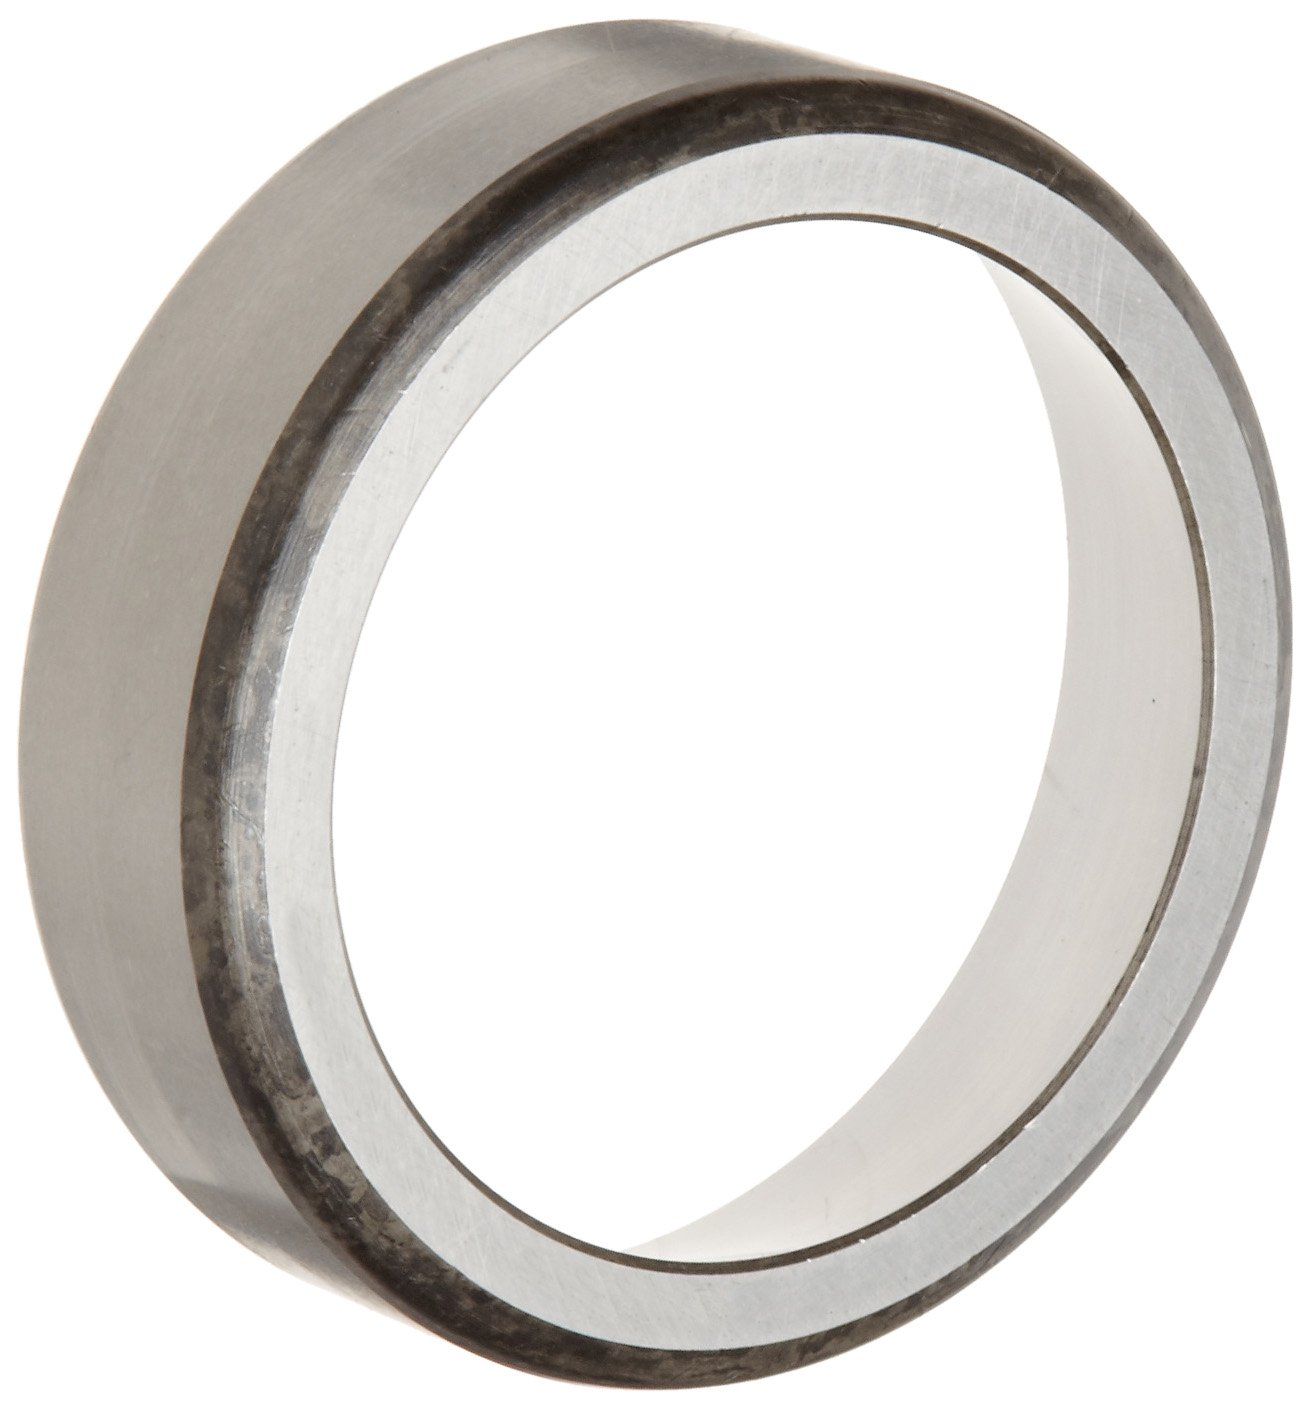 TIMKEN 3820 TAPERED ROLLER BEARING STANDARD TOLERANCE STRAIGHT ... SINGLE CUP